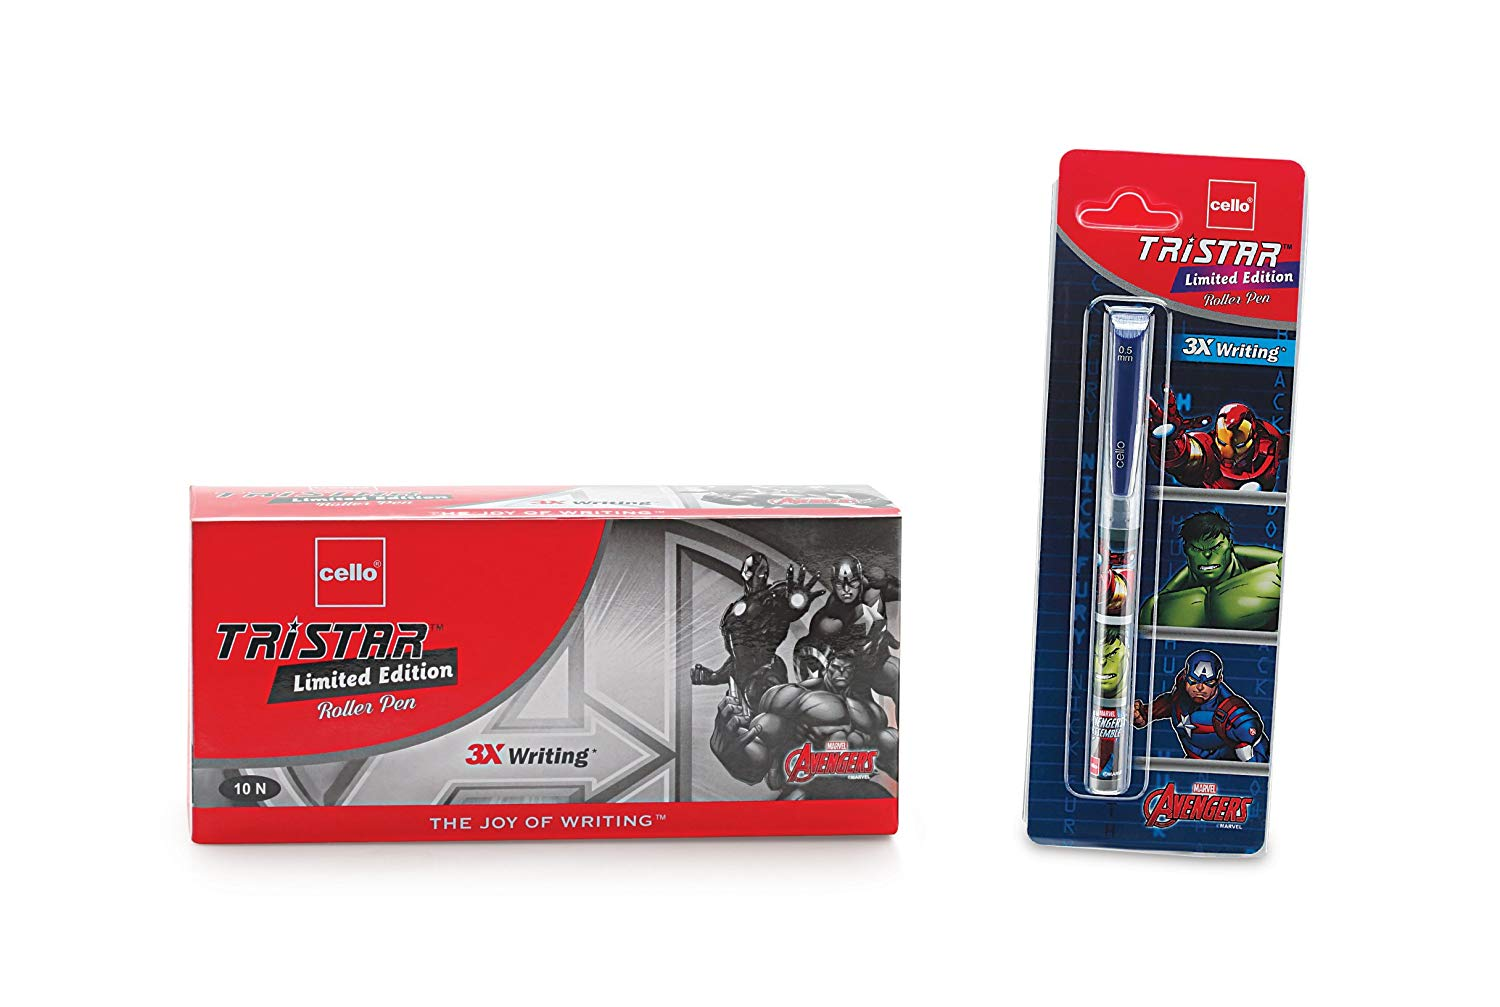 Cello Tristar Limited Edition Avengers Pen Set - Pack of 10